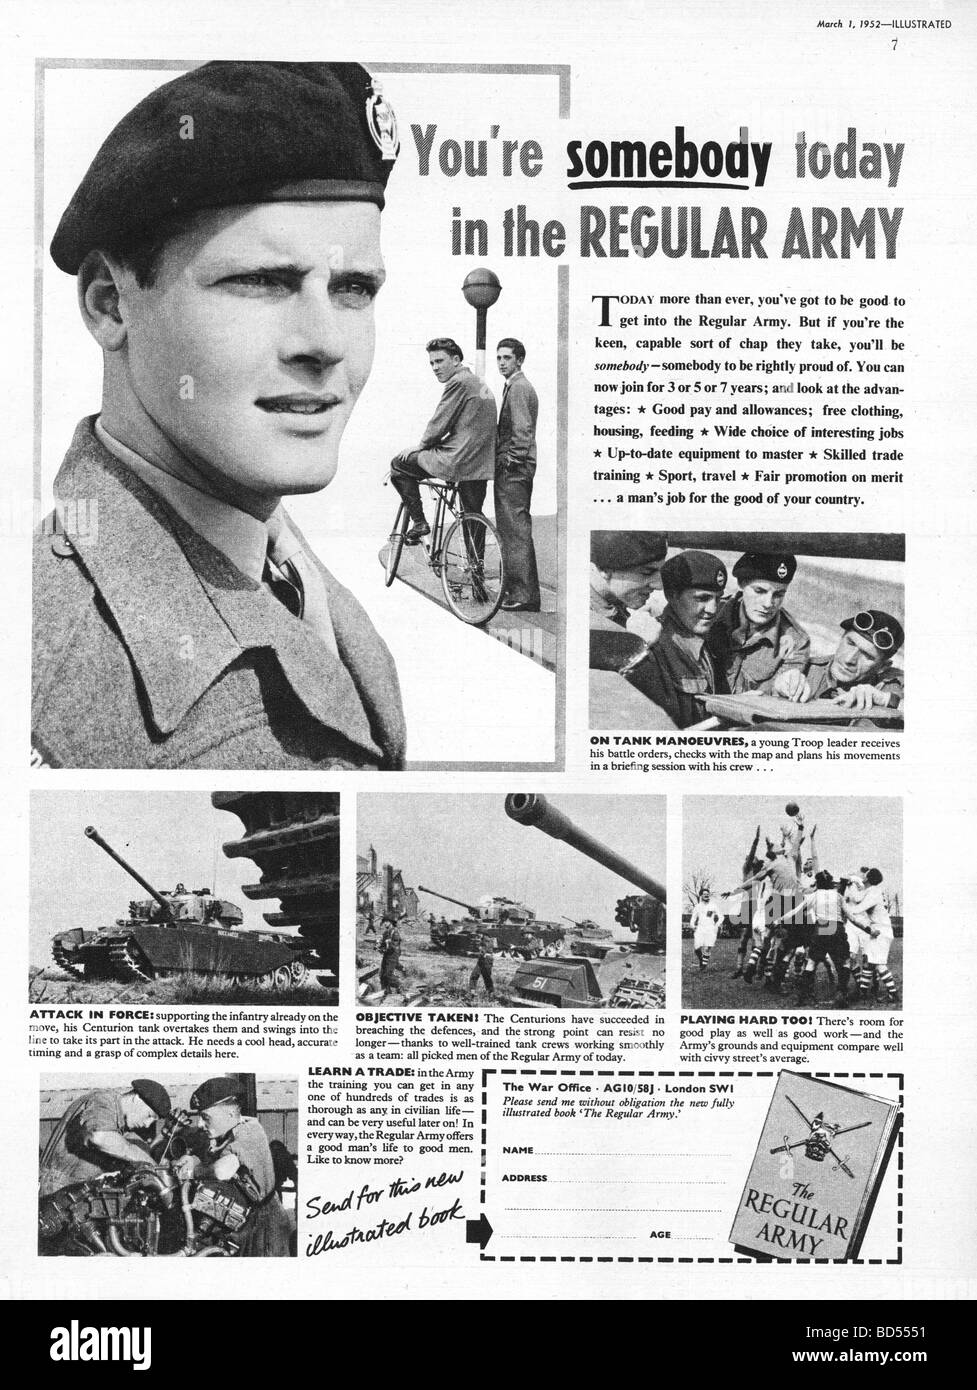 British Army recruitment advert from 1952 - Stock Image